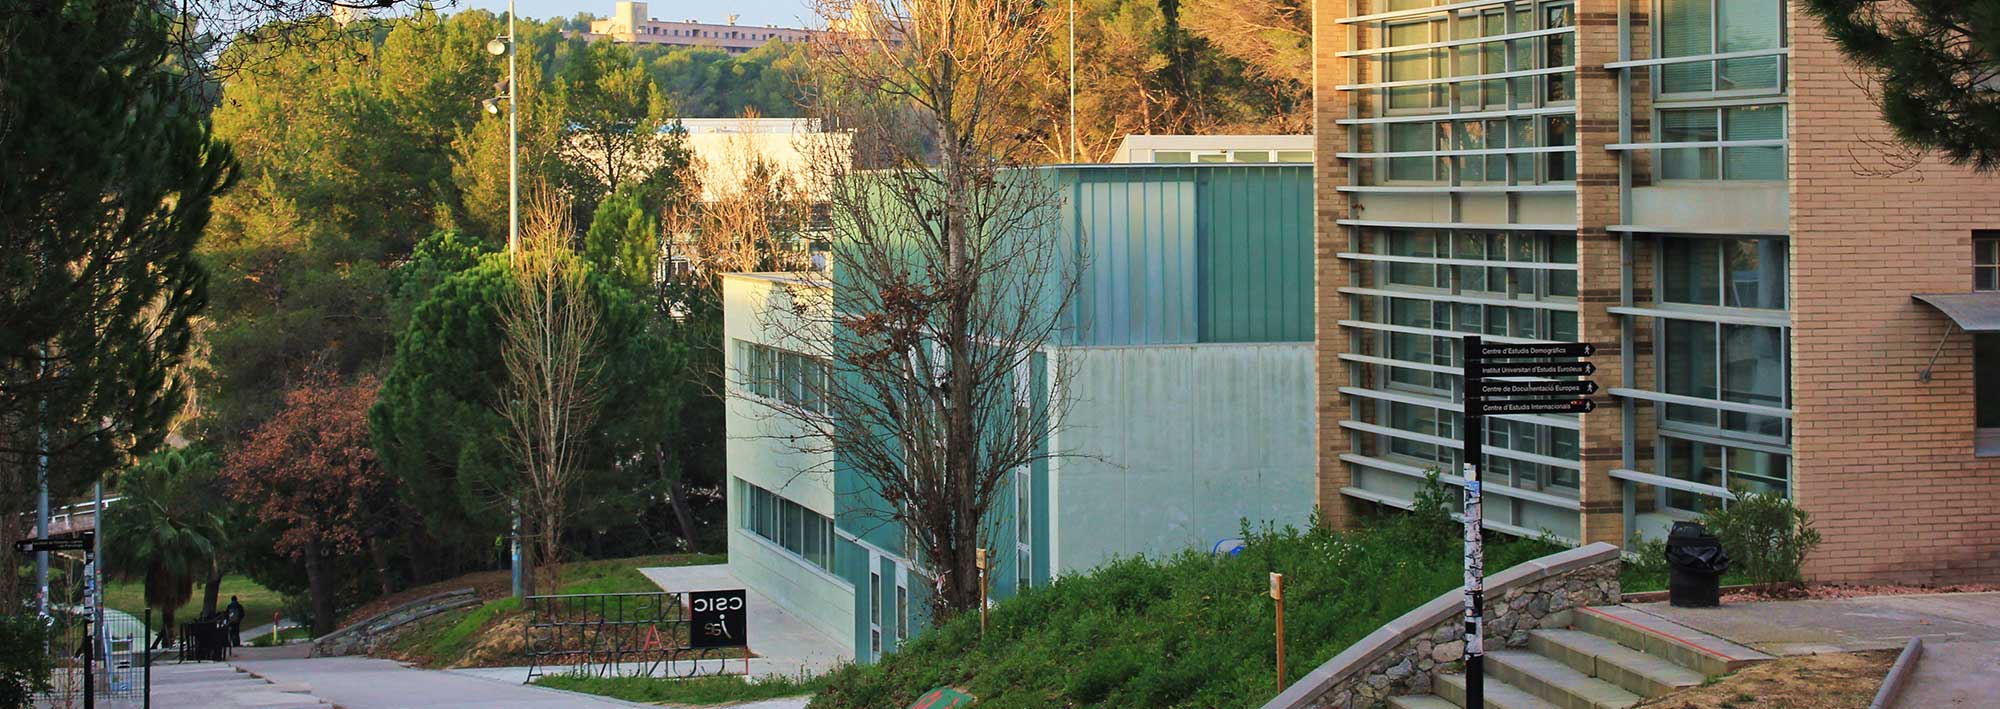 Registration for the UAB Barcelona Summer School 2020 continues